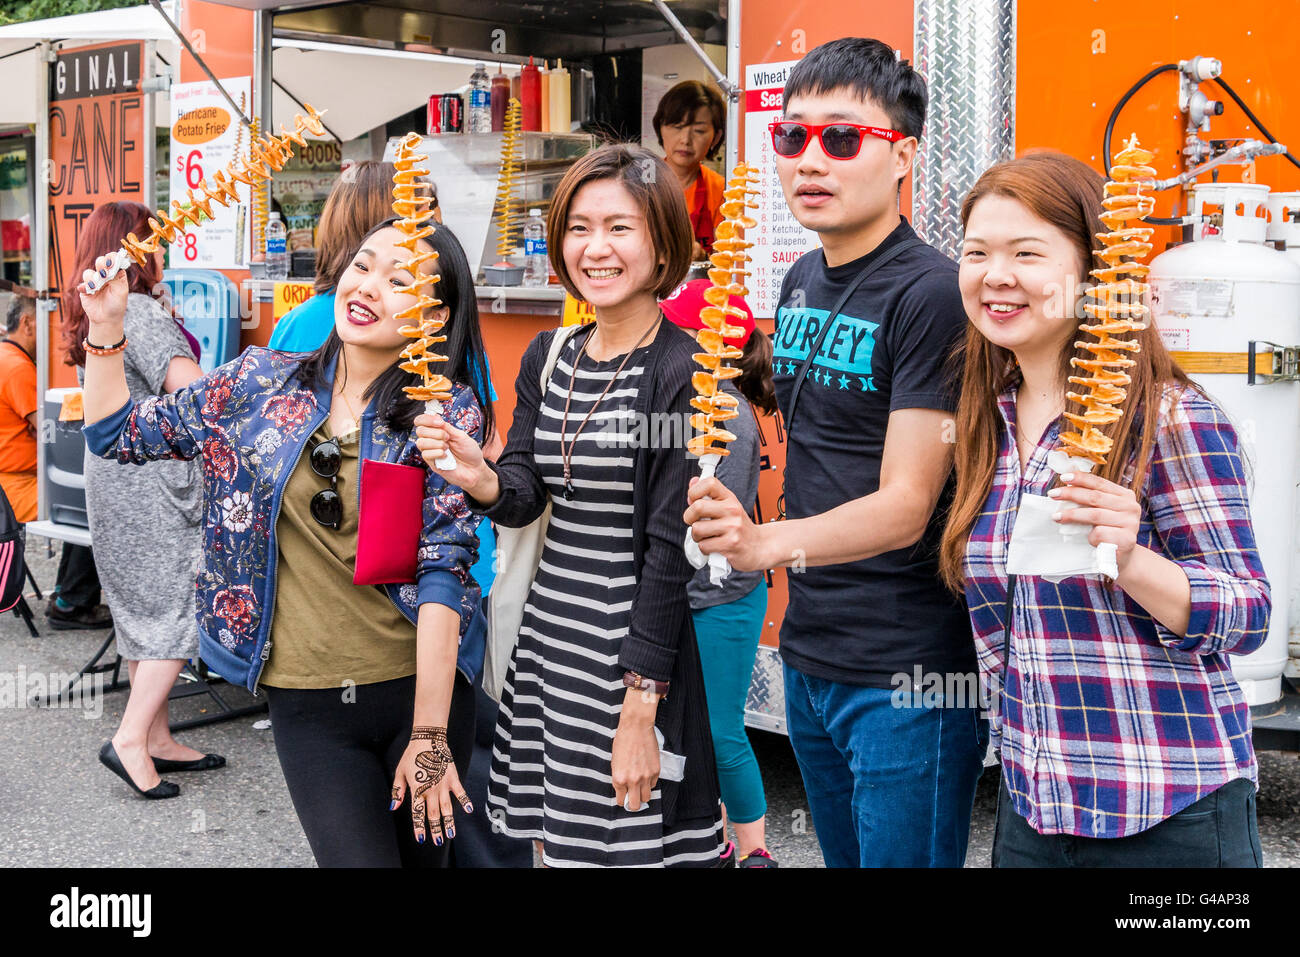 Spiral fries, Food Truck, Vancouver, British Columbia, Canada - Stock Image